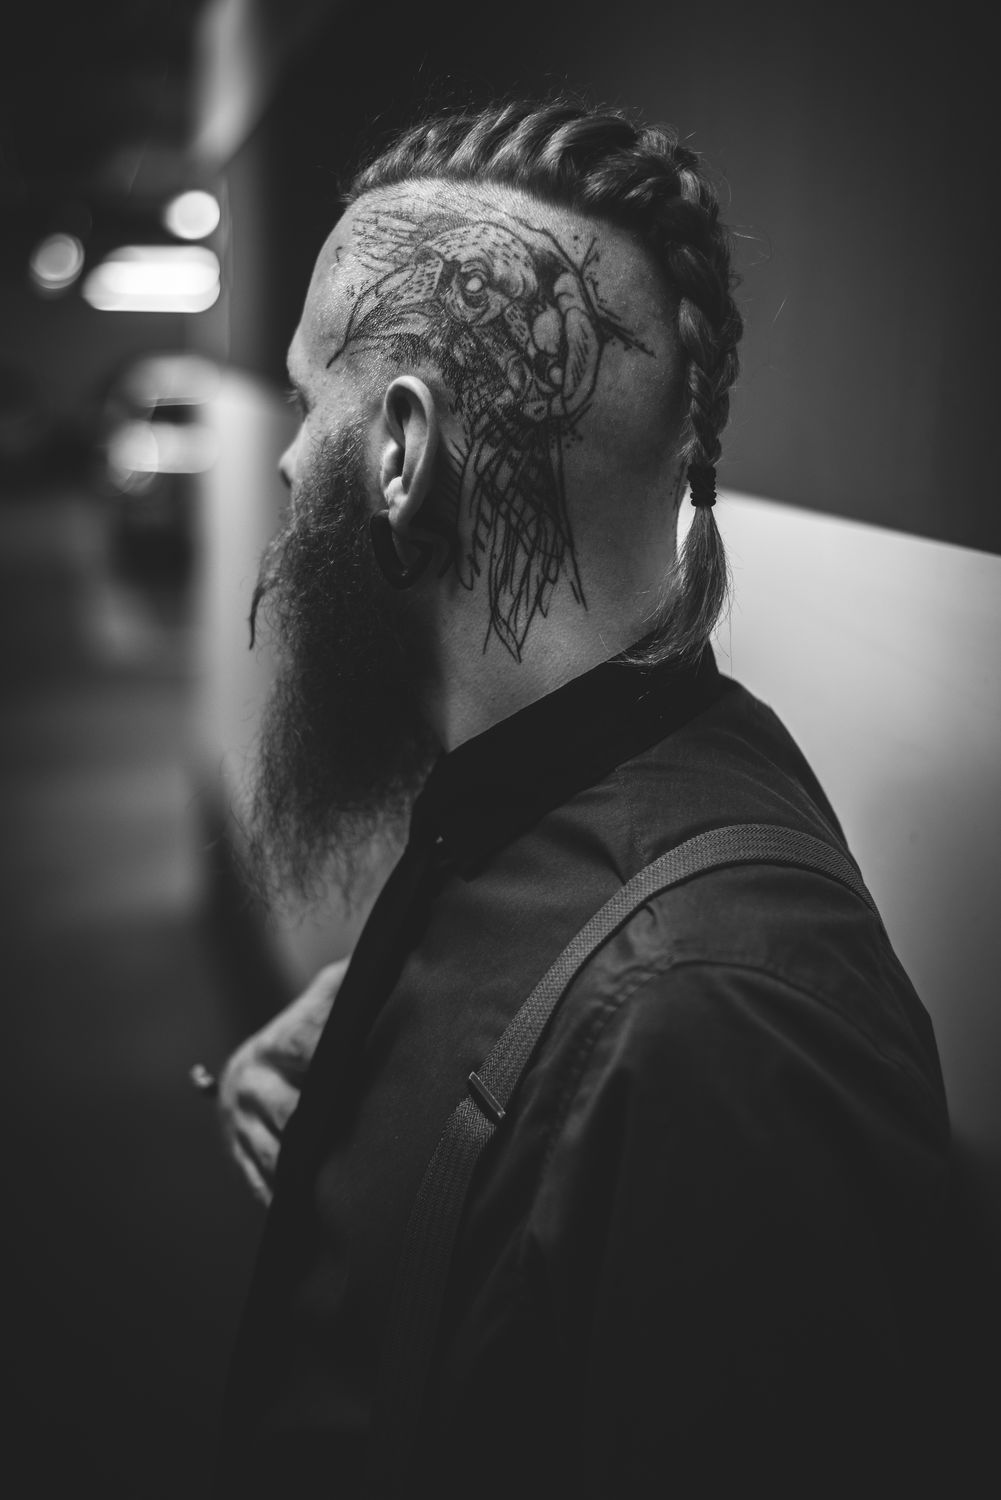 Timon Rostock streetphotography Fashion tattoo beard real people leisure activity one person indoors lifestyles men young adult close-up day EyeEmNewHere